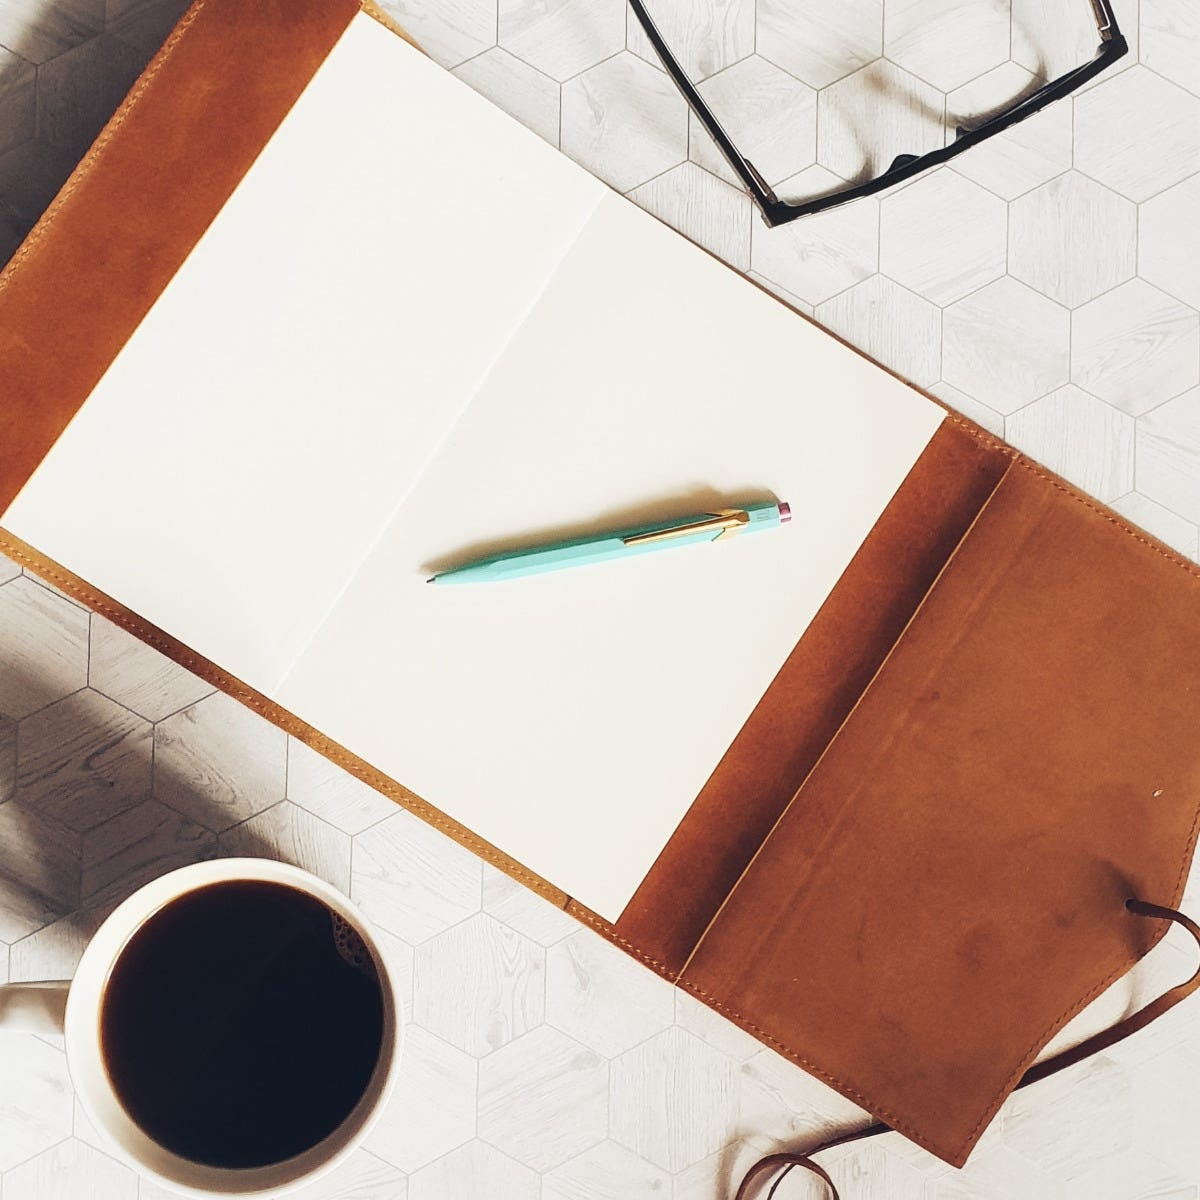 Amalfi Journal and Caran d'Ache 849 'Claim Your Style' Ballpoint - Photo Courtesy of Sim's Life